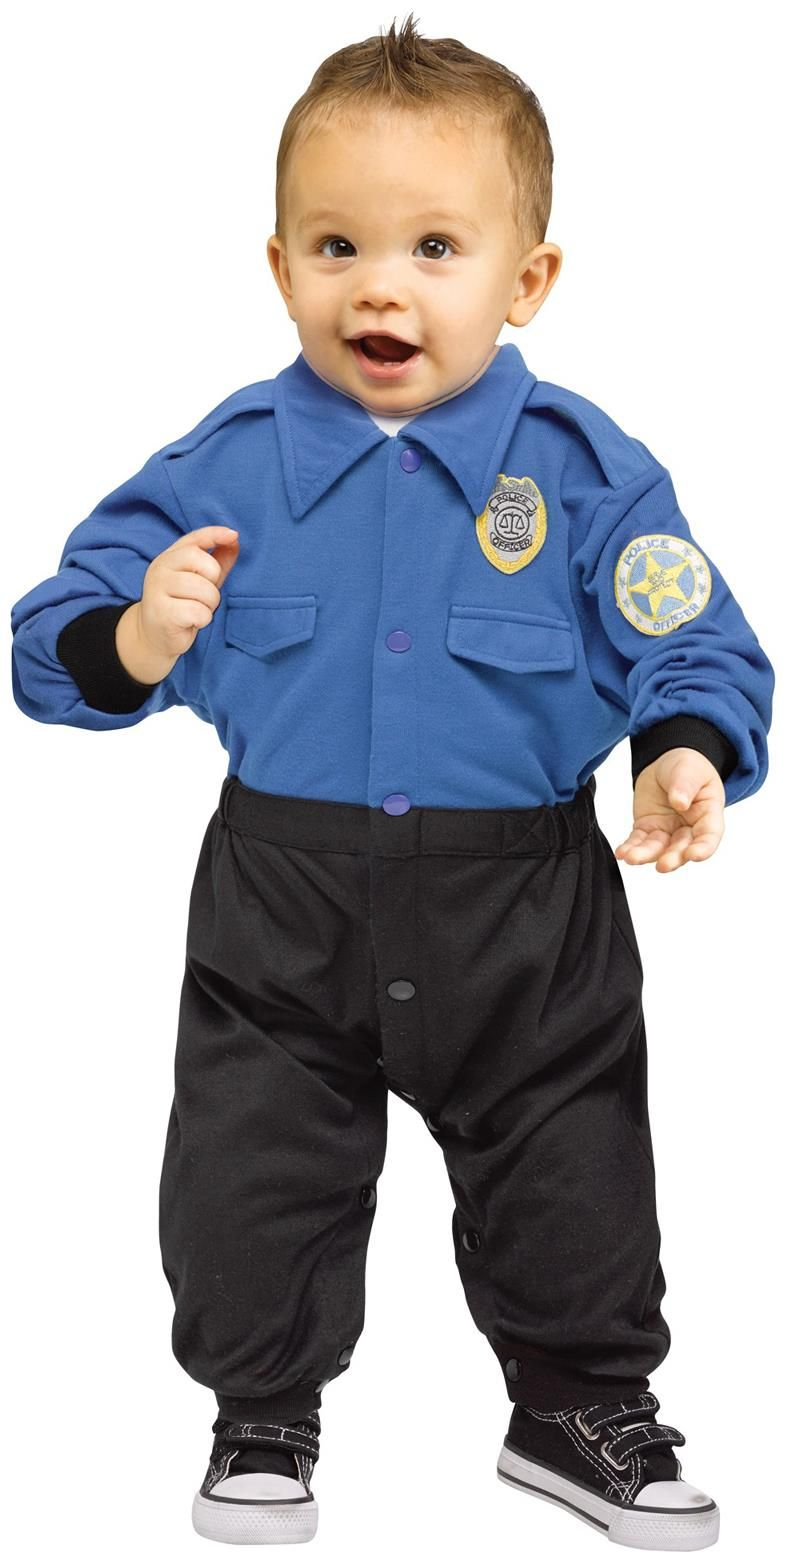 PartyBell.com - Policeman #Toddler #Costume  sc 1 st  Pinterest & PartyBell.com - Policeman #Toddler #Costume | 4th July Costumes ...